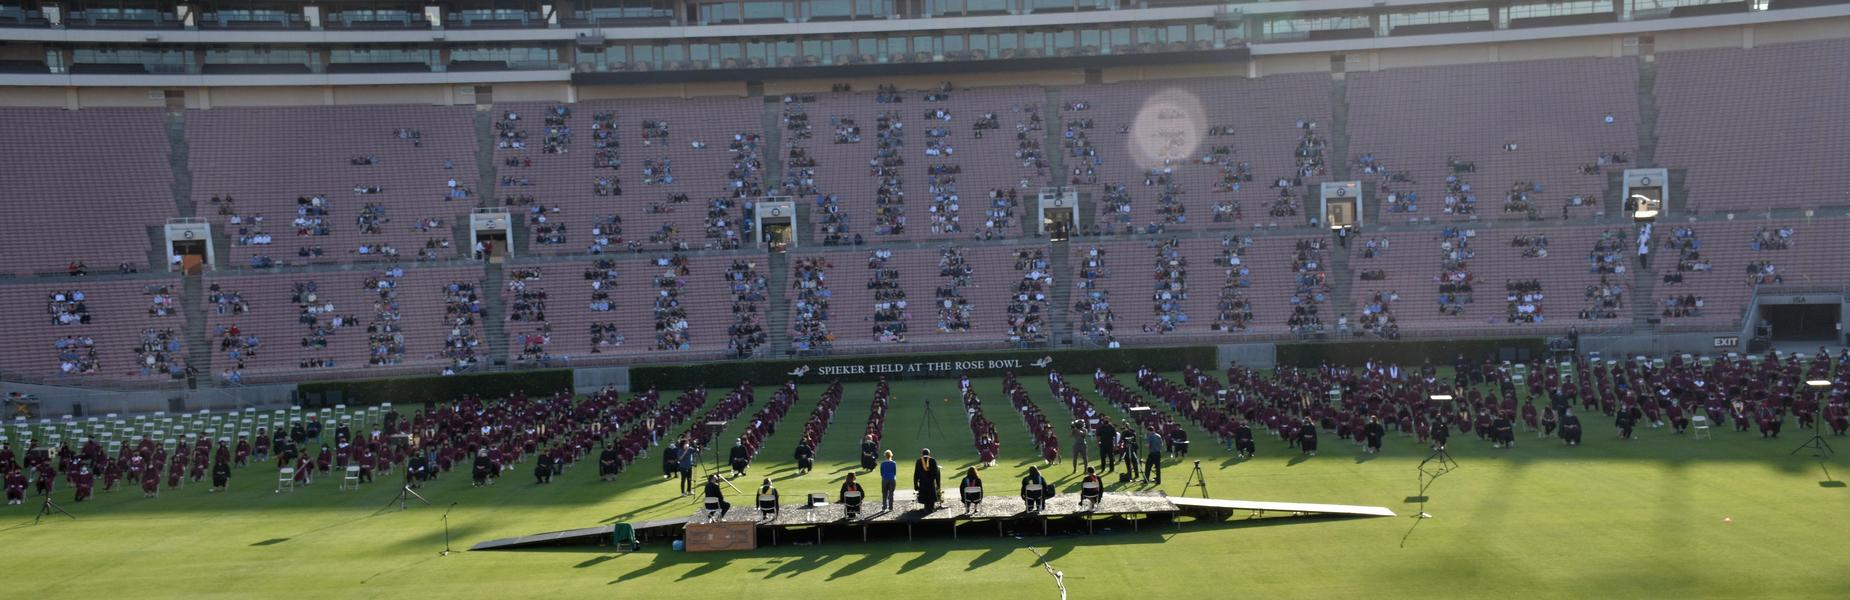 MKHS 2021 Graduation Ceremony at the Rose Bowl